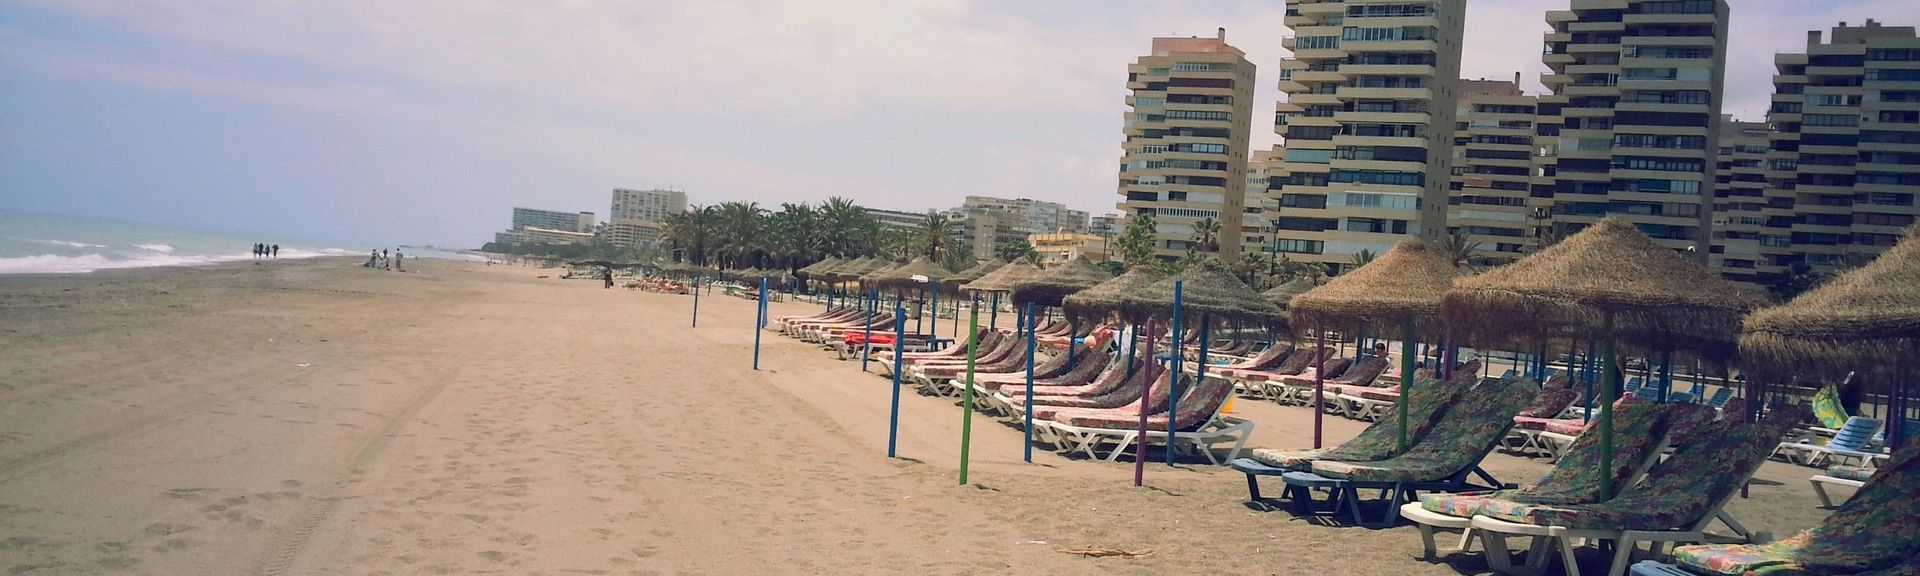 Costa del Sol Square, Torremolinos, Spain